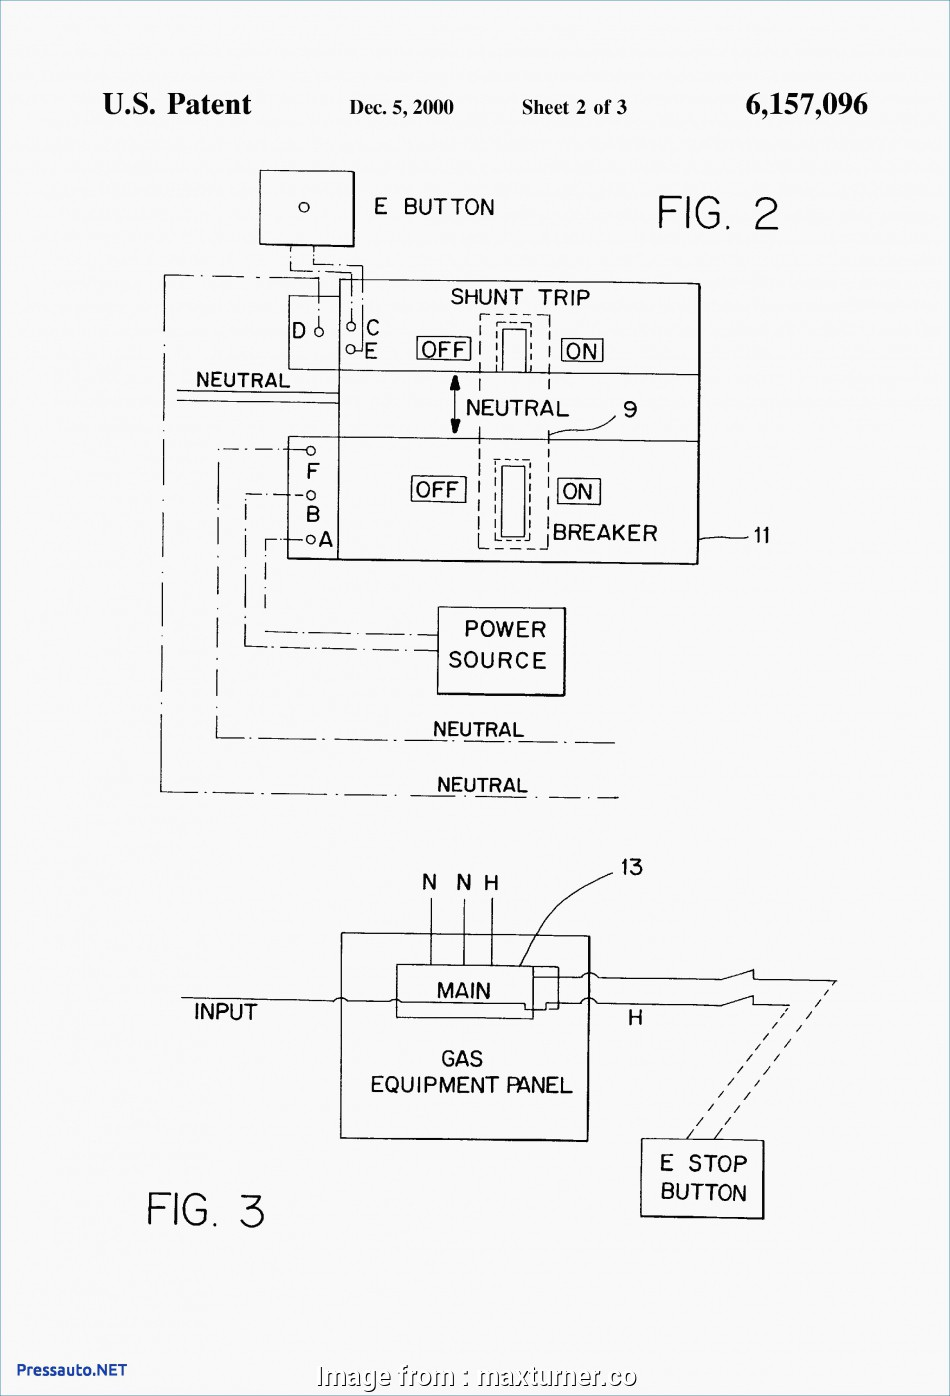 hight resolution of light switch circuit breaker trip square d pressure switch 9013 wiring diagram shunt trip circuit rh